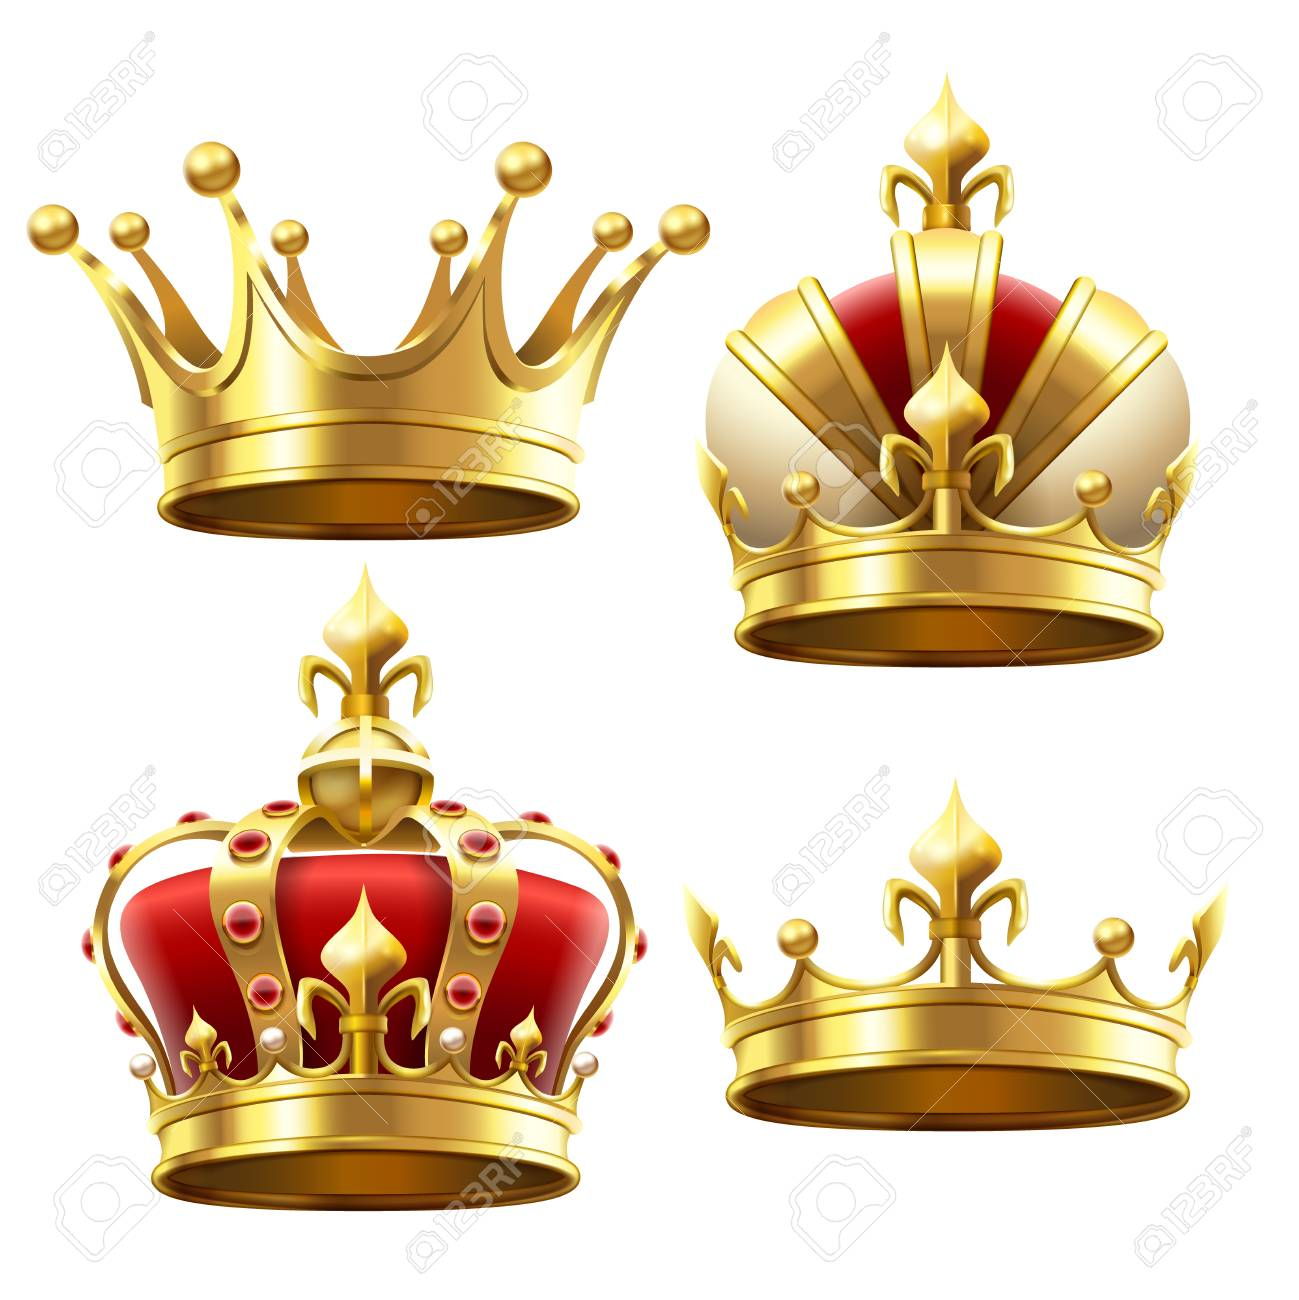 Realistic Gold Crown Crowning Headdress For King And Queen Stock